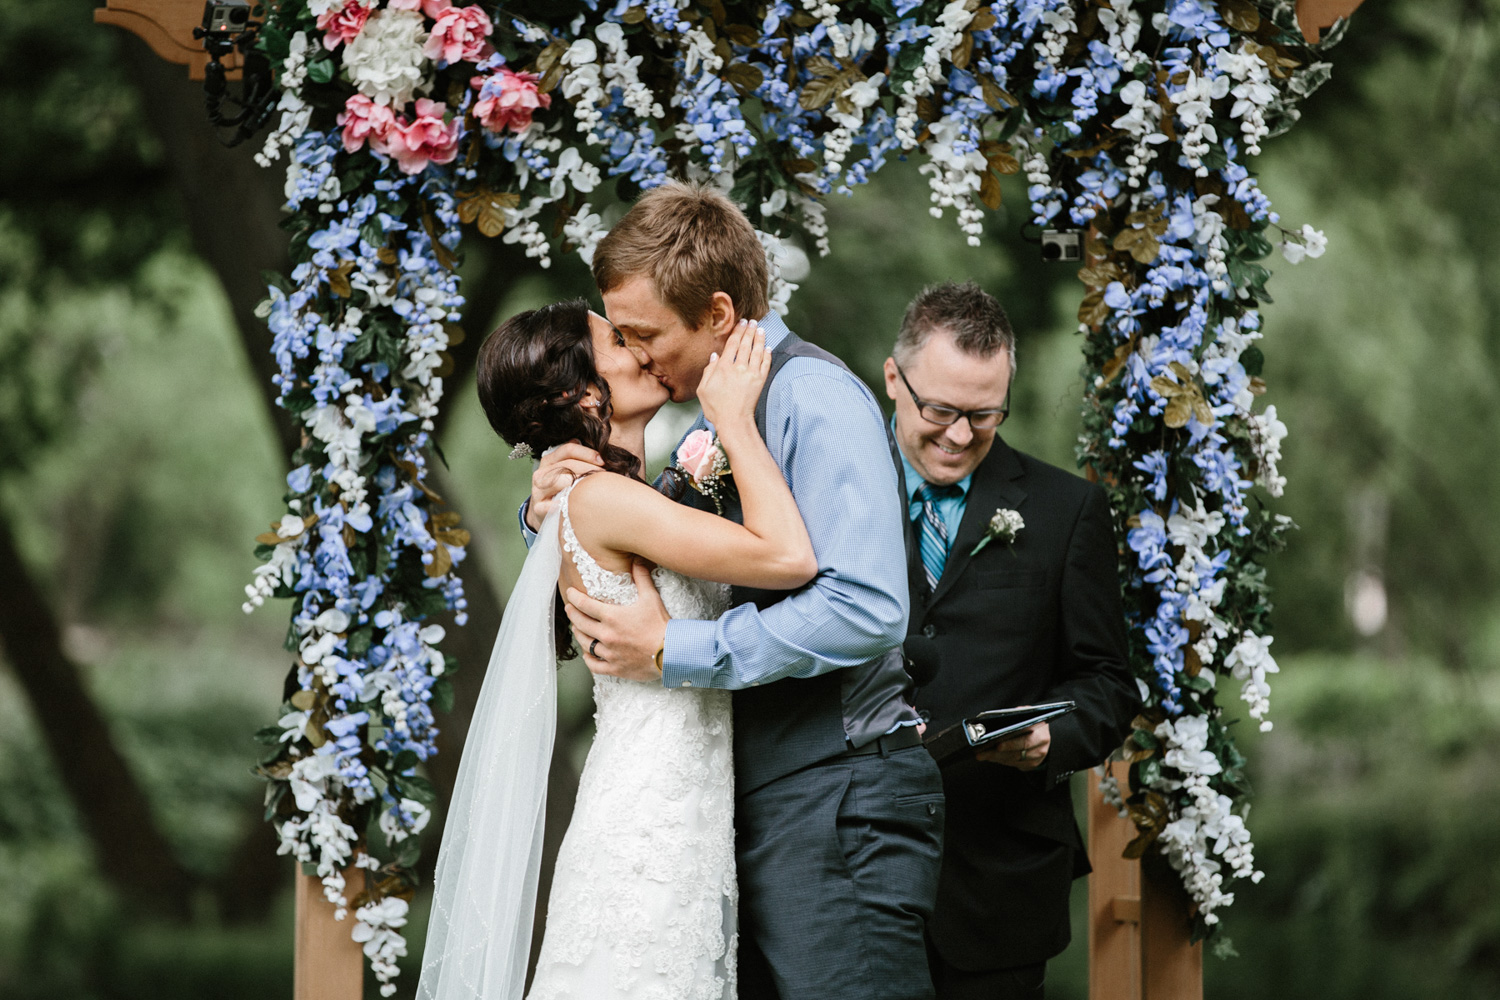 Outdoor_Wedding_SiouxFalls_MaryJoWegnerArboretum_Photographer_Calli&Jon_090.jpg